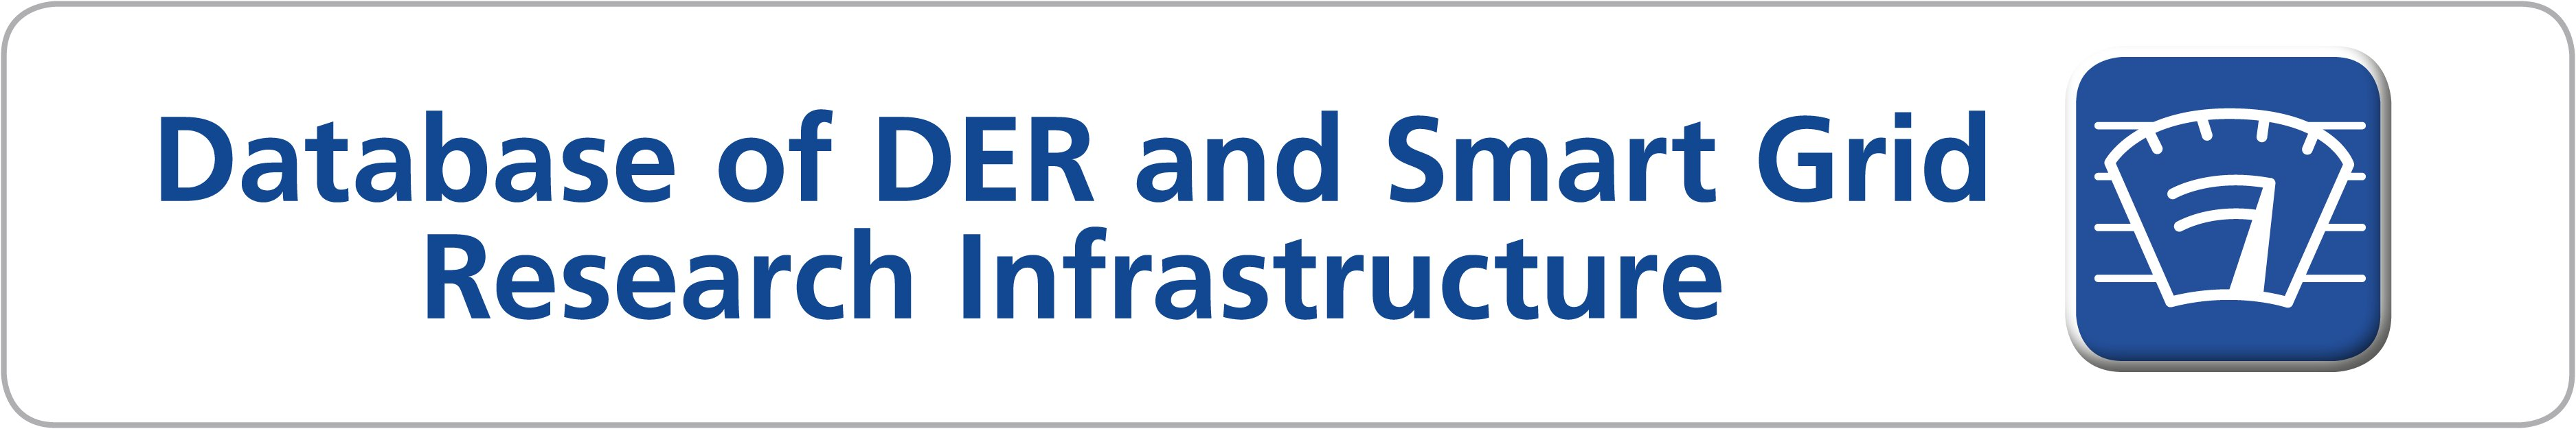 Database of DER and Smart Grid Research Infrastructure